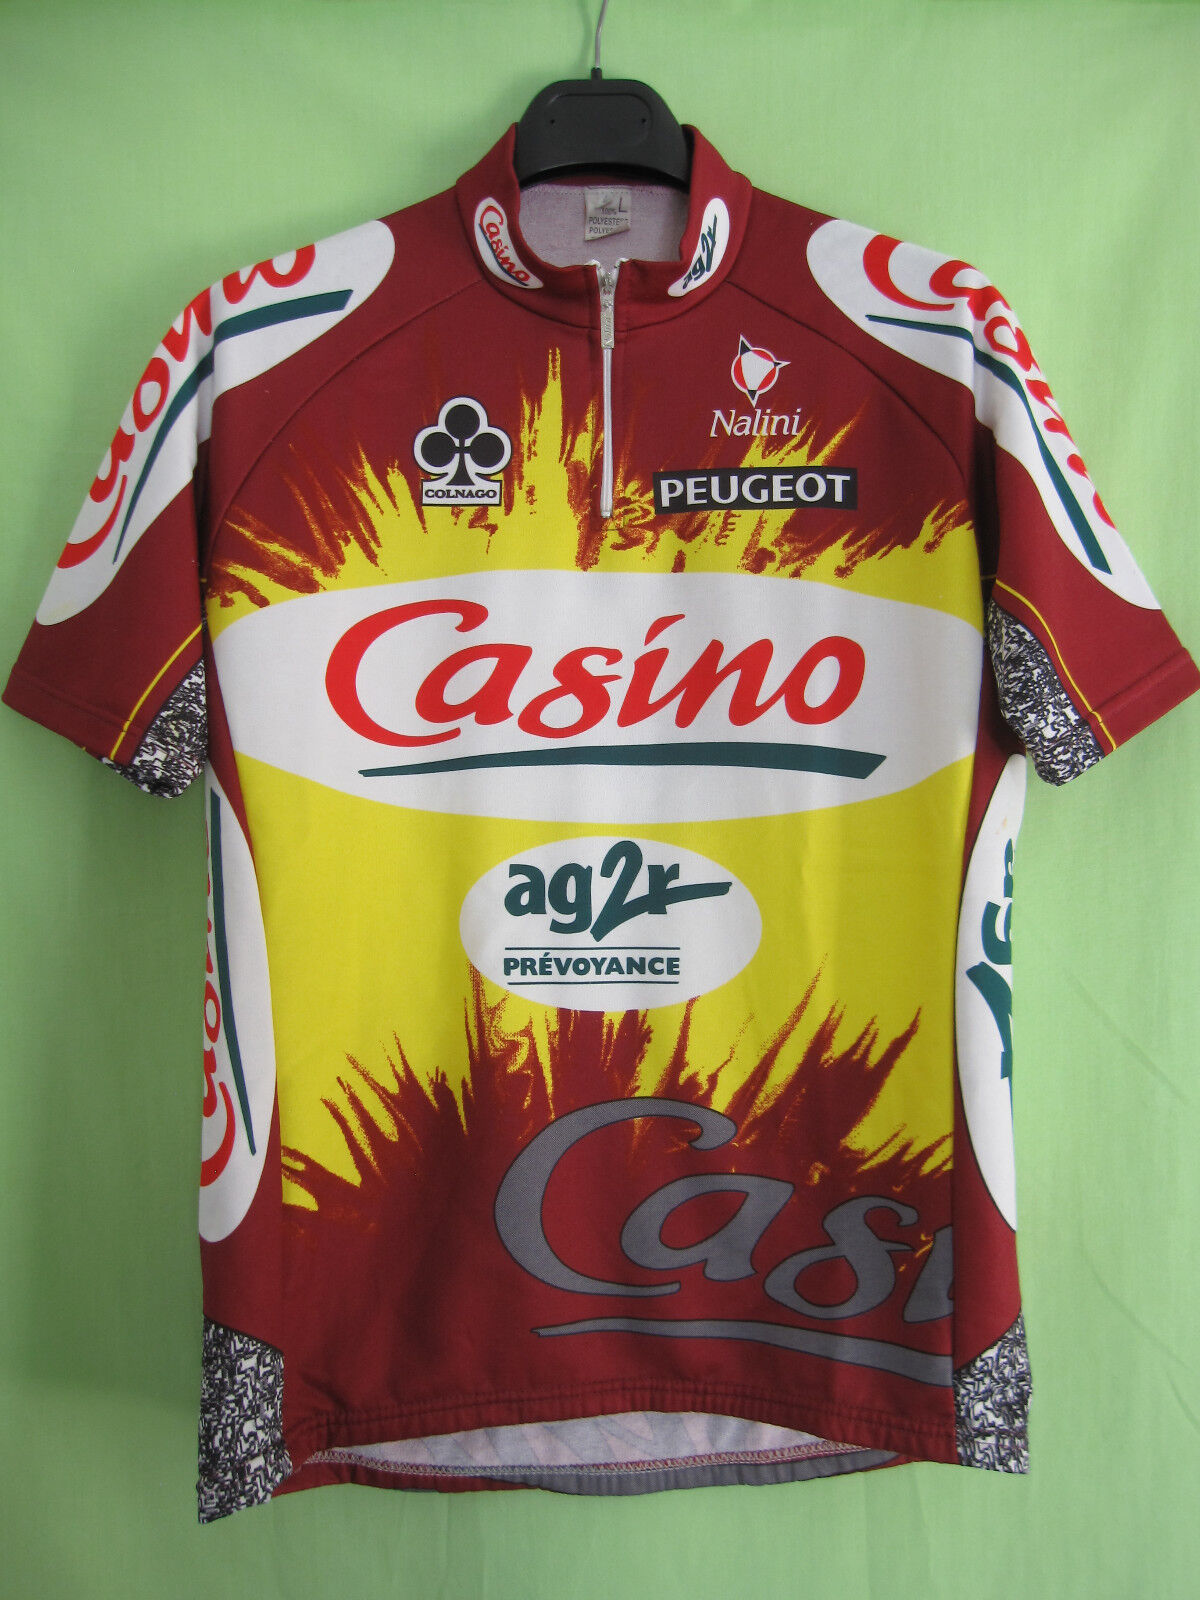 Maillot cycliste Casino Ag2r Tour 1998 Colnago vintage jersey Cycling - 4   L